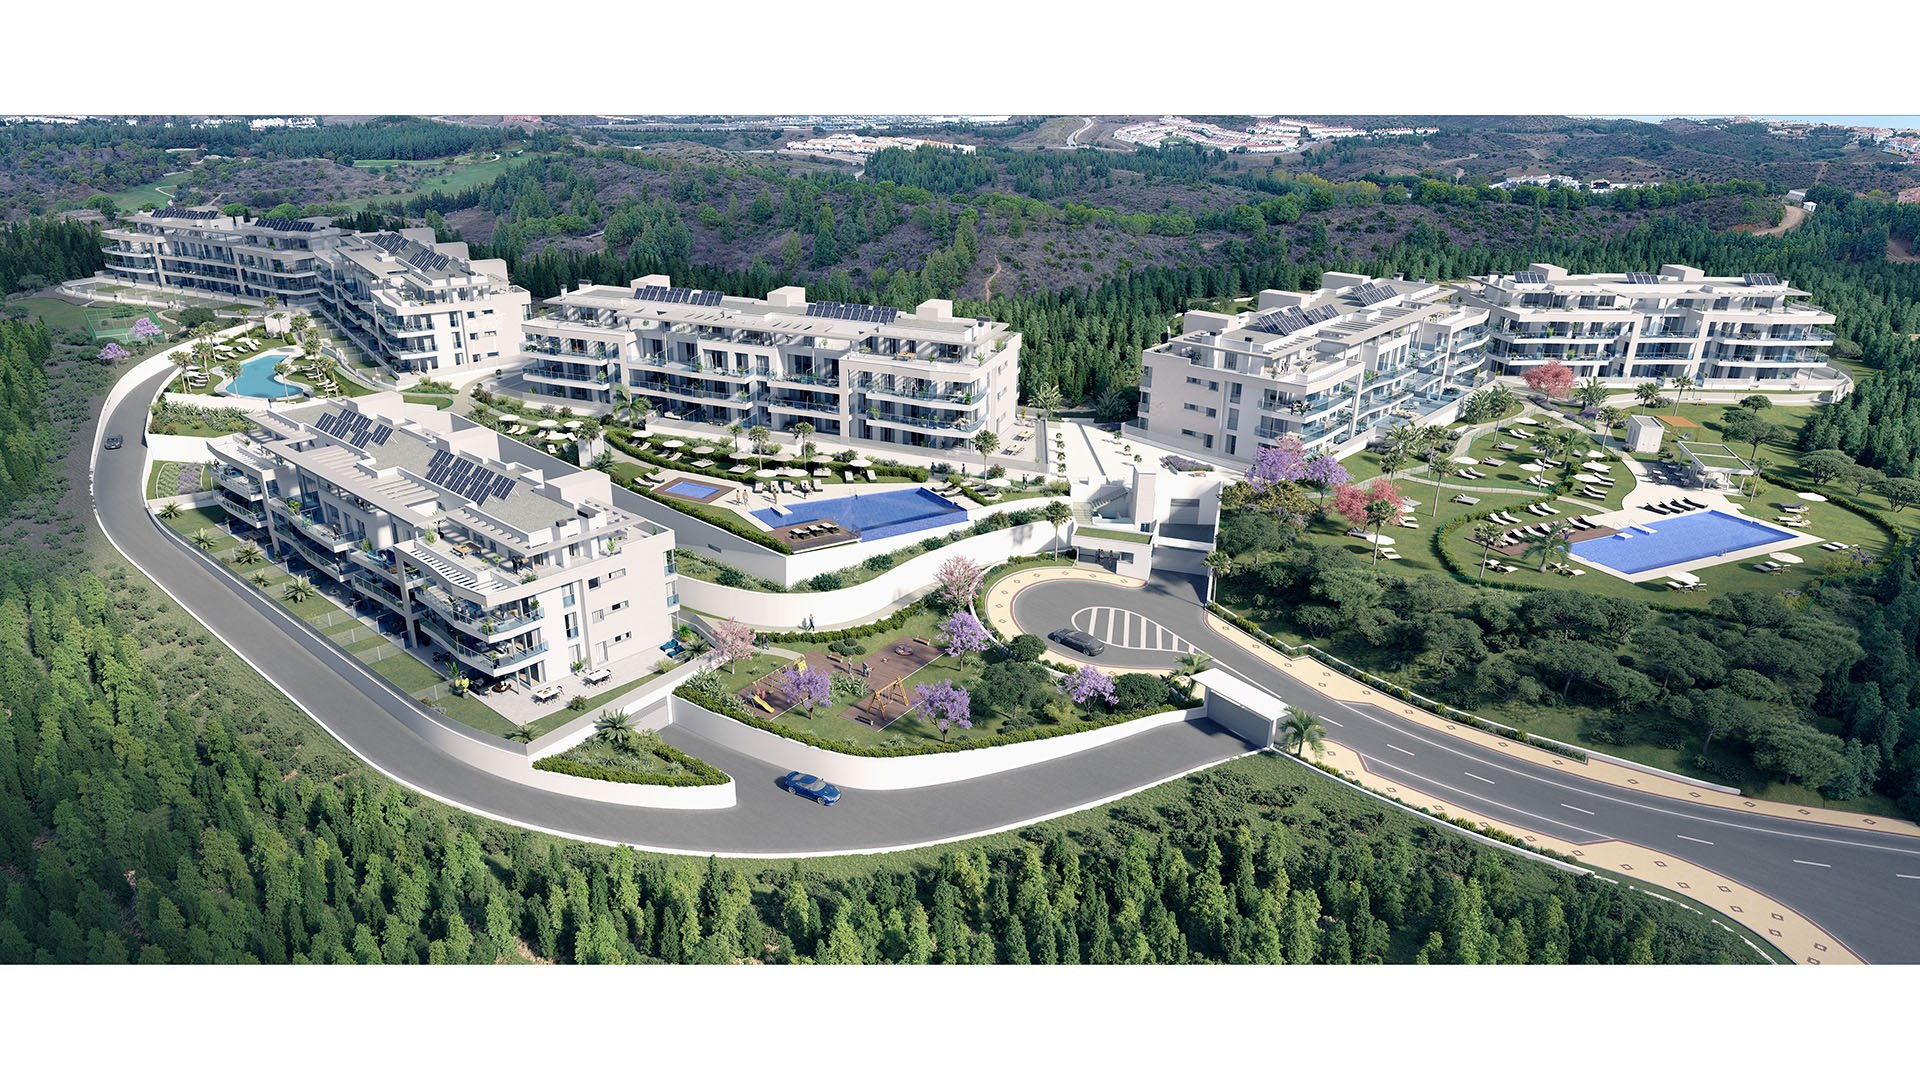 Vitta Nature: Penthouses in Mijas Costa surrounded by nature and stunning sea views